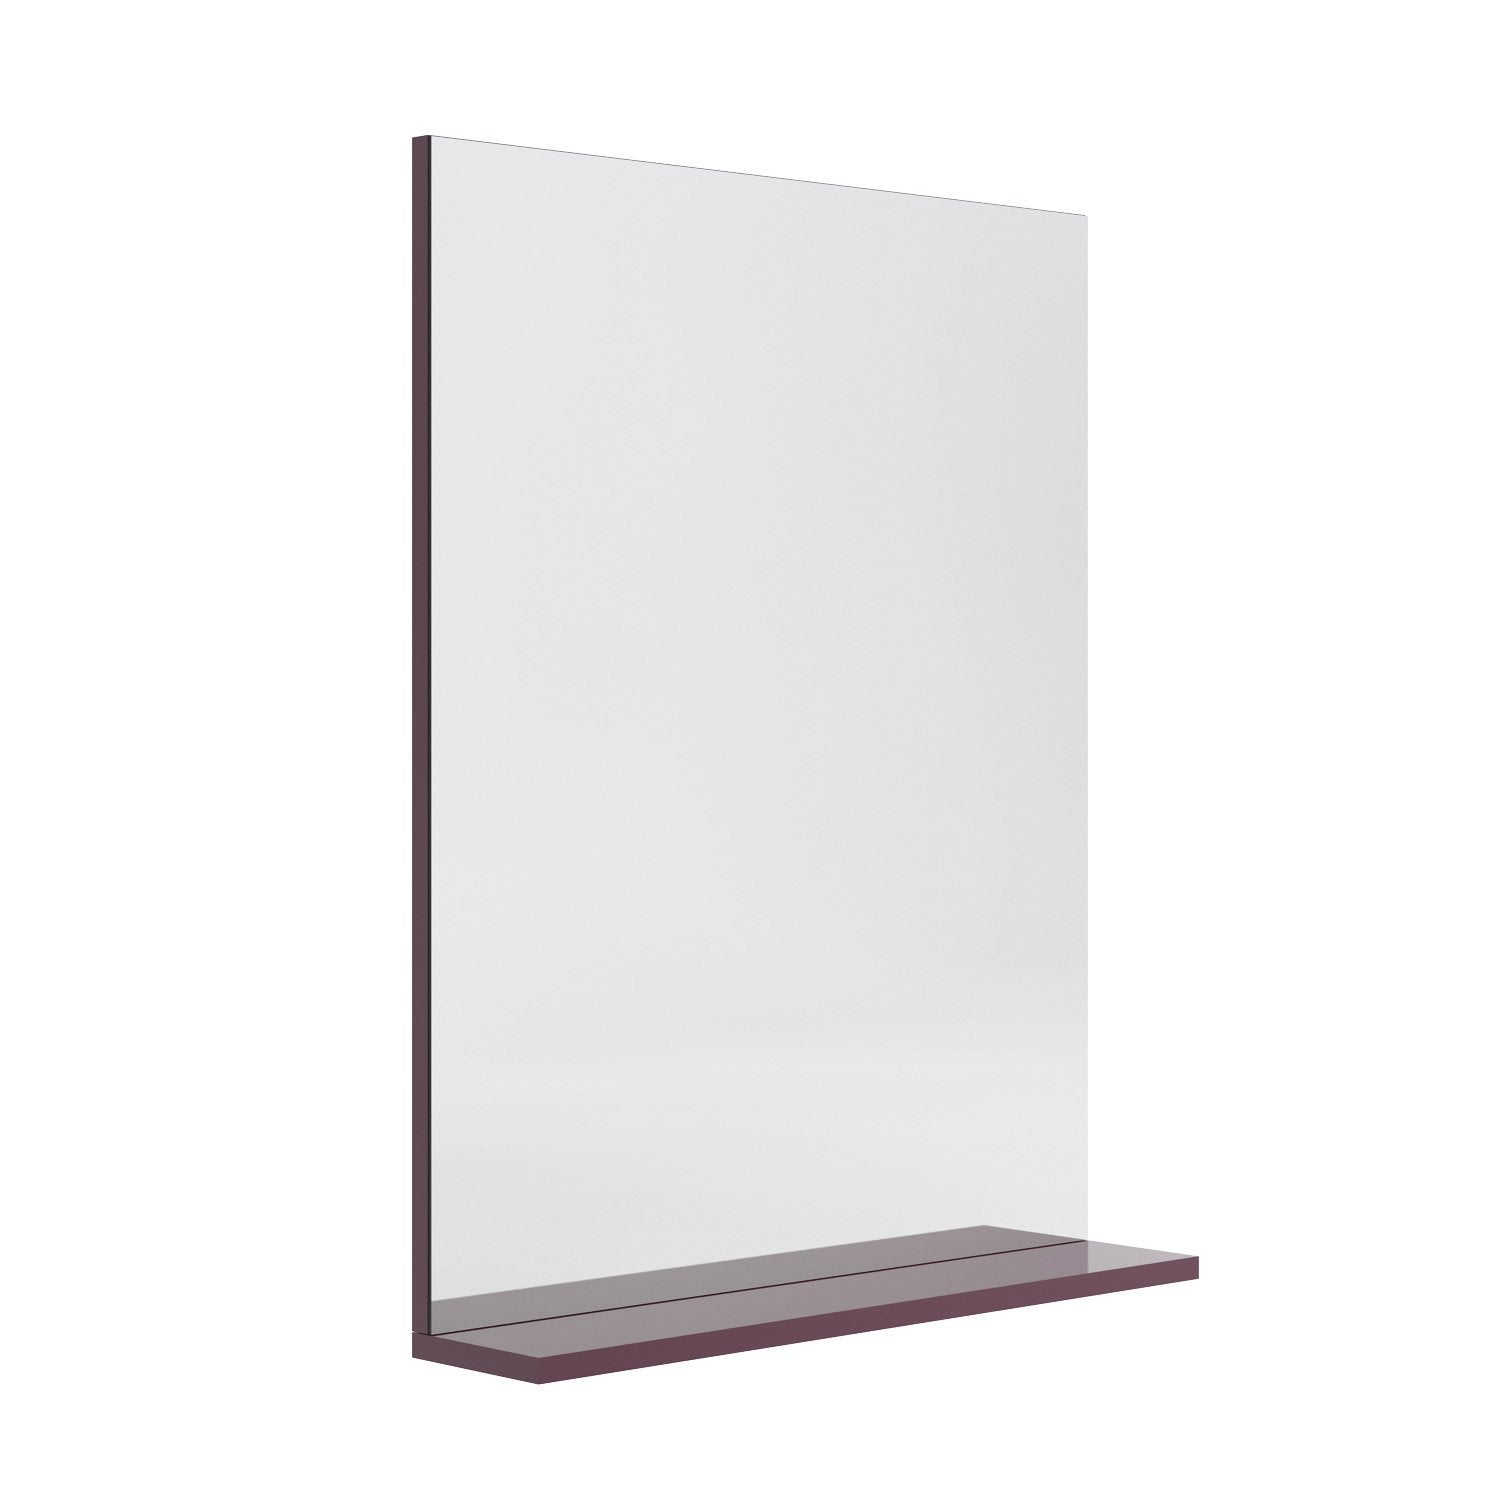 Miroir avec tablette opale leroy merlin for Miroir tablette